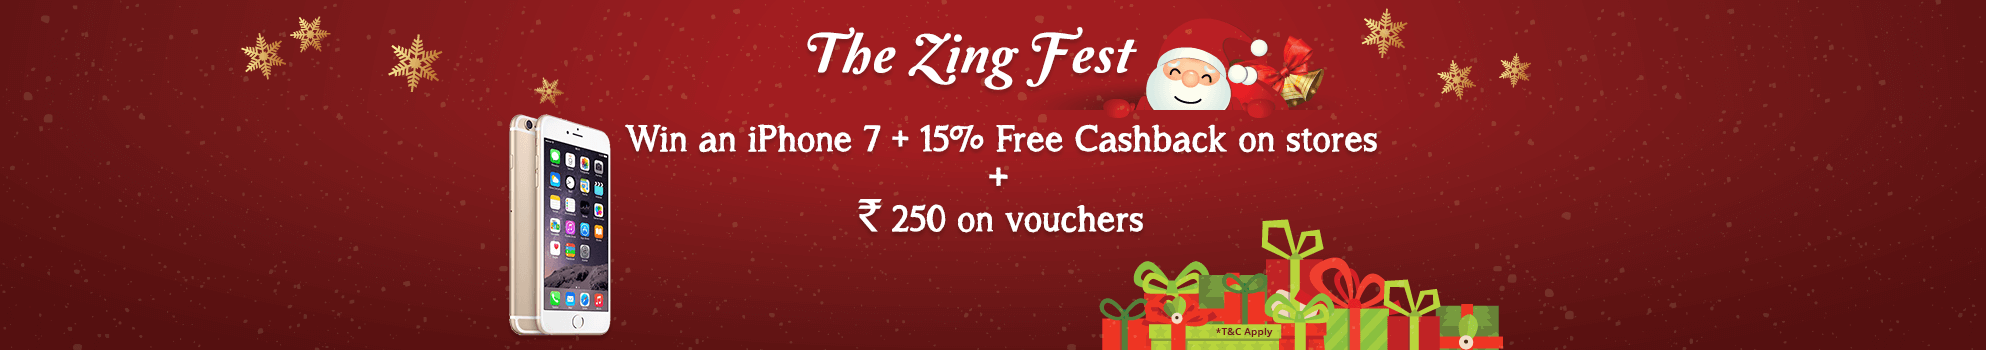 Zing Fest Cashback Offer